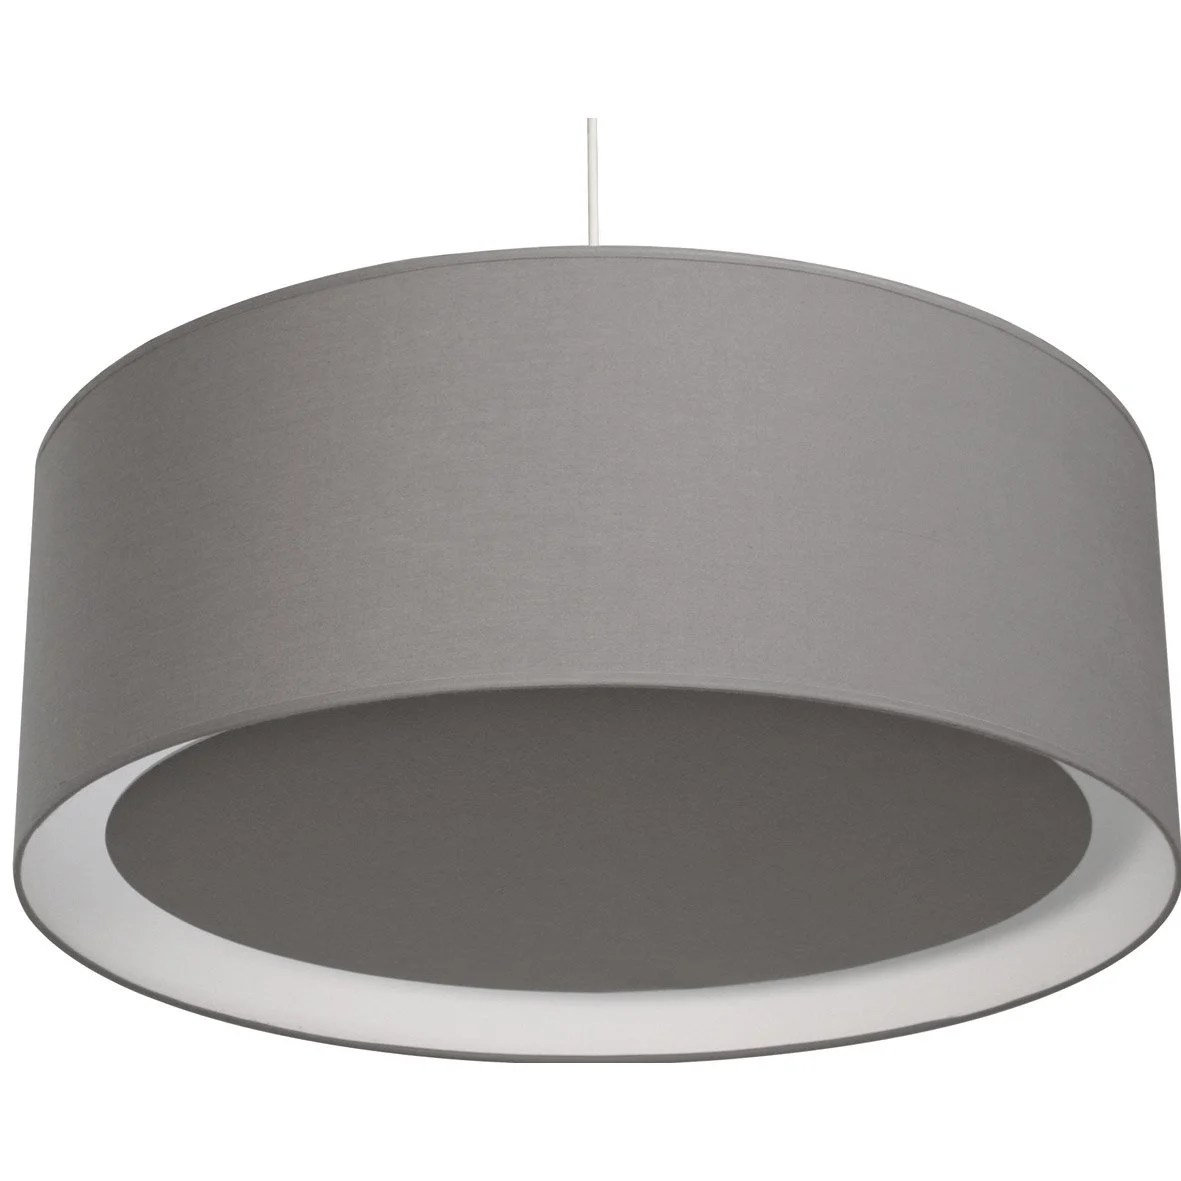 Suspension Moderne Salon Suspension Contemporain Essentiel Coton Gris Galet N3 1 X